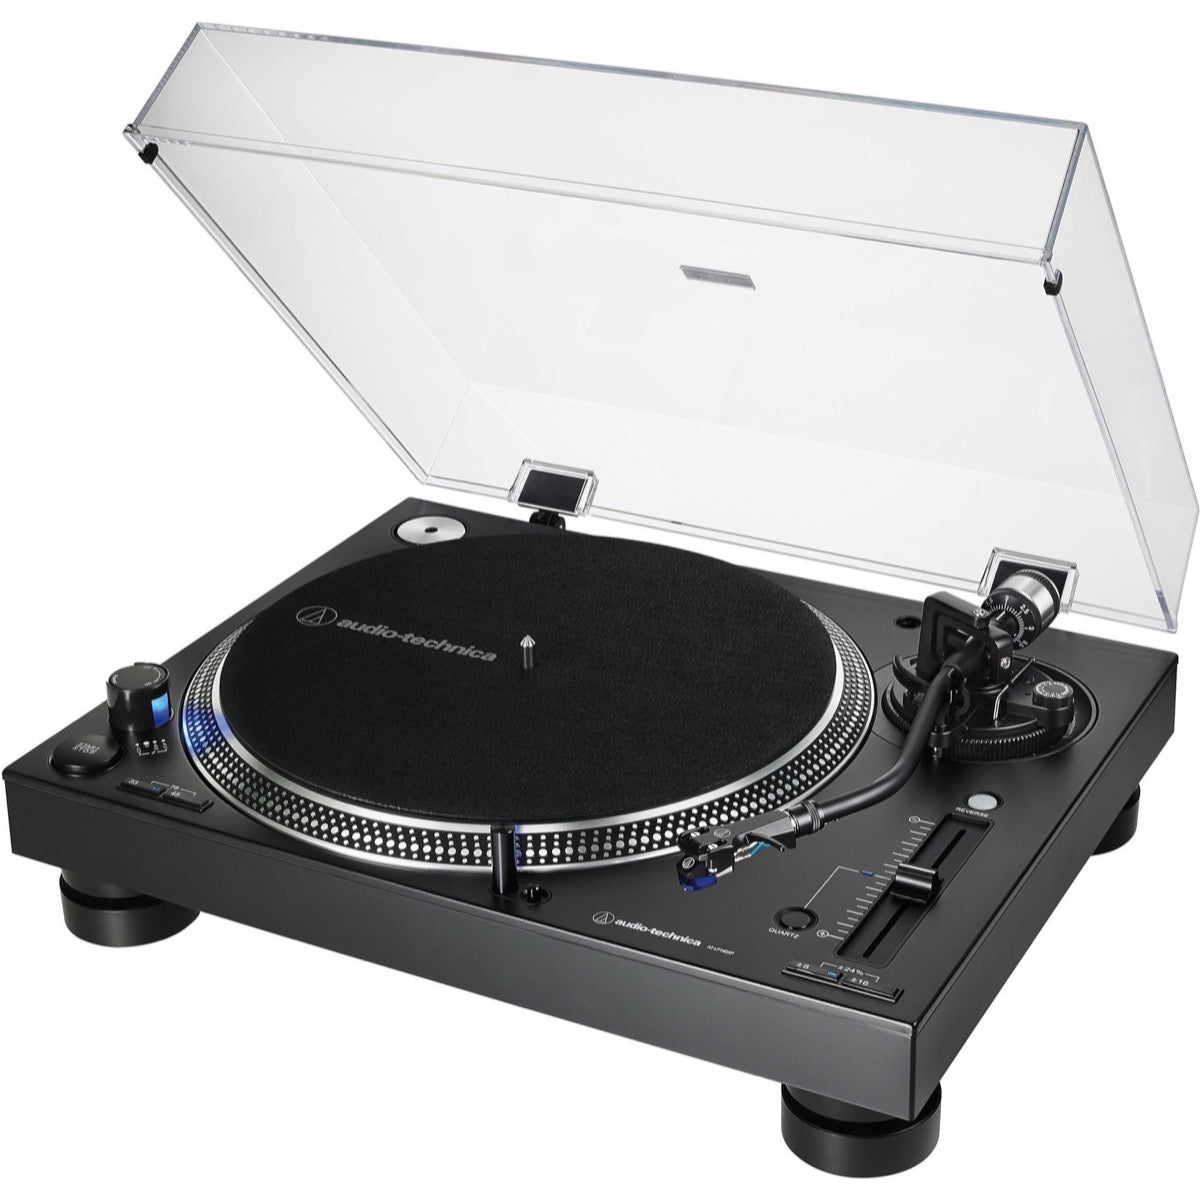 Audio-Technica AT-LP140XP Direct-Drive Turntable, Black